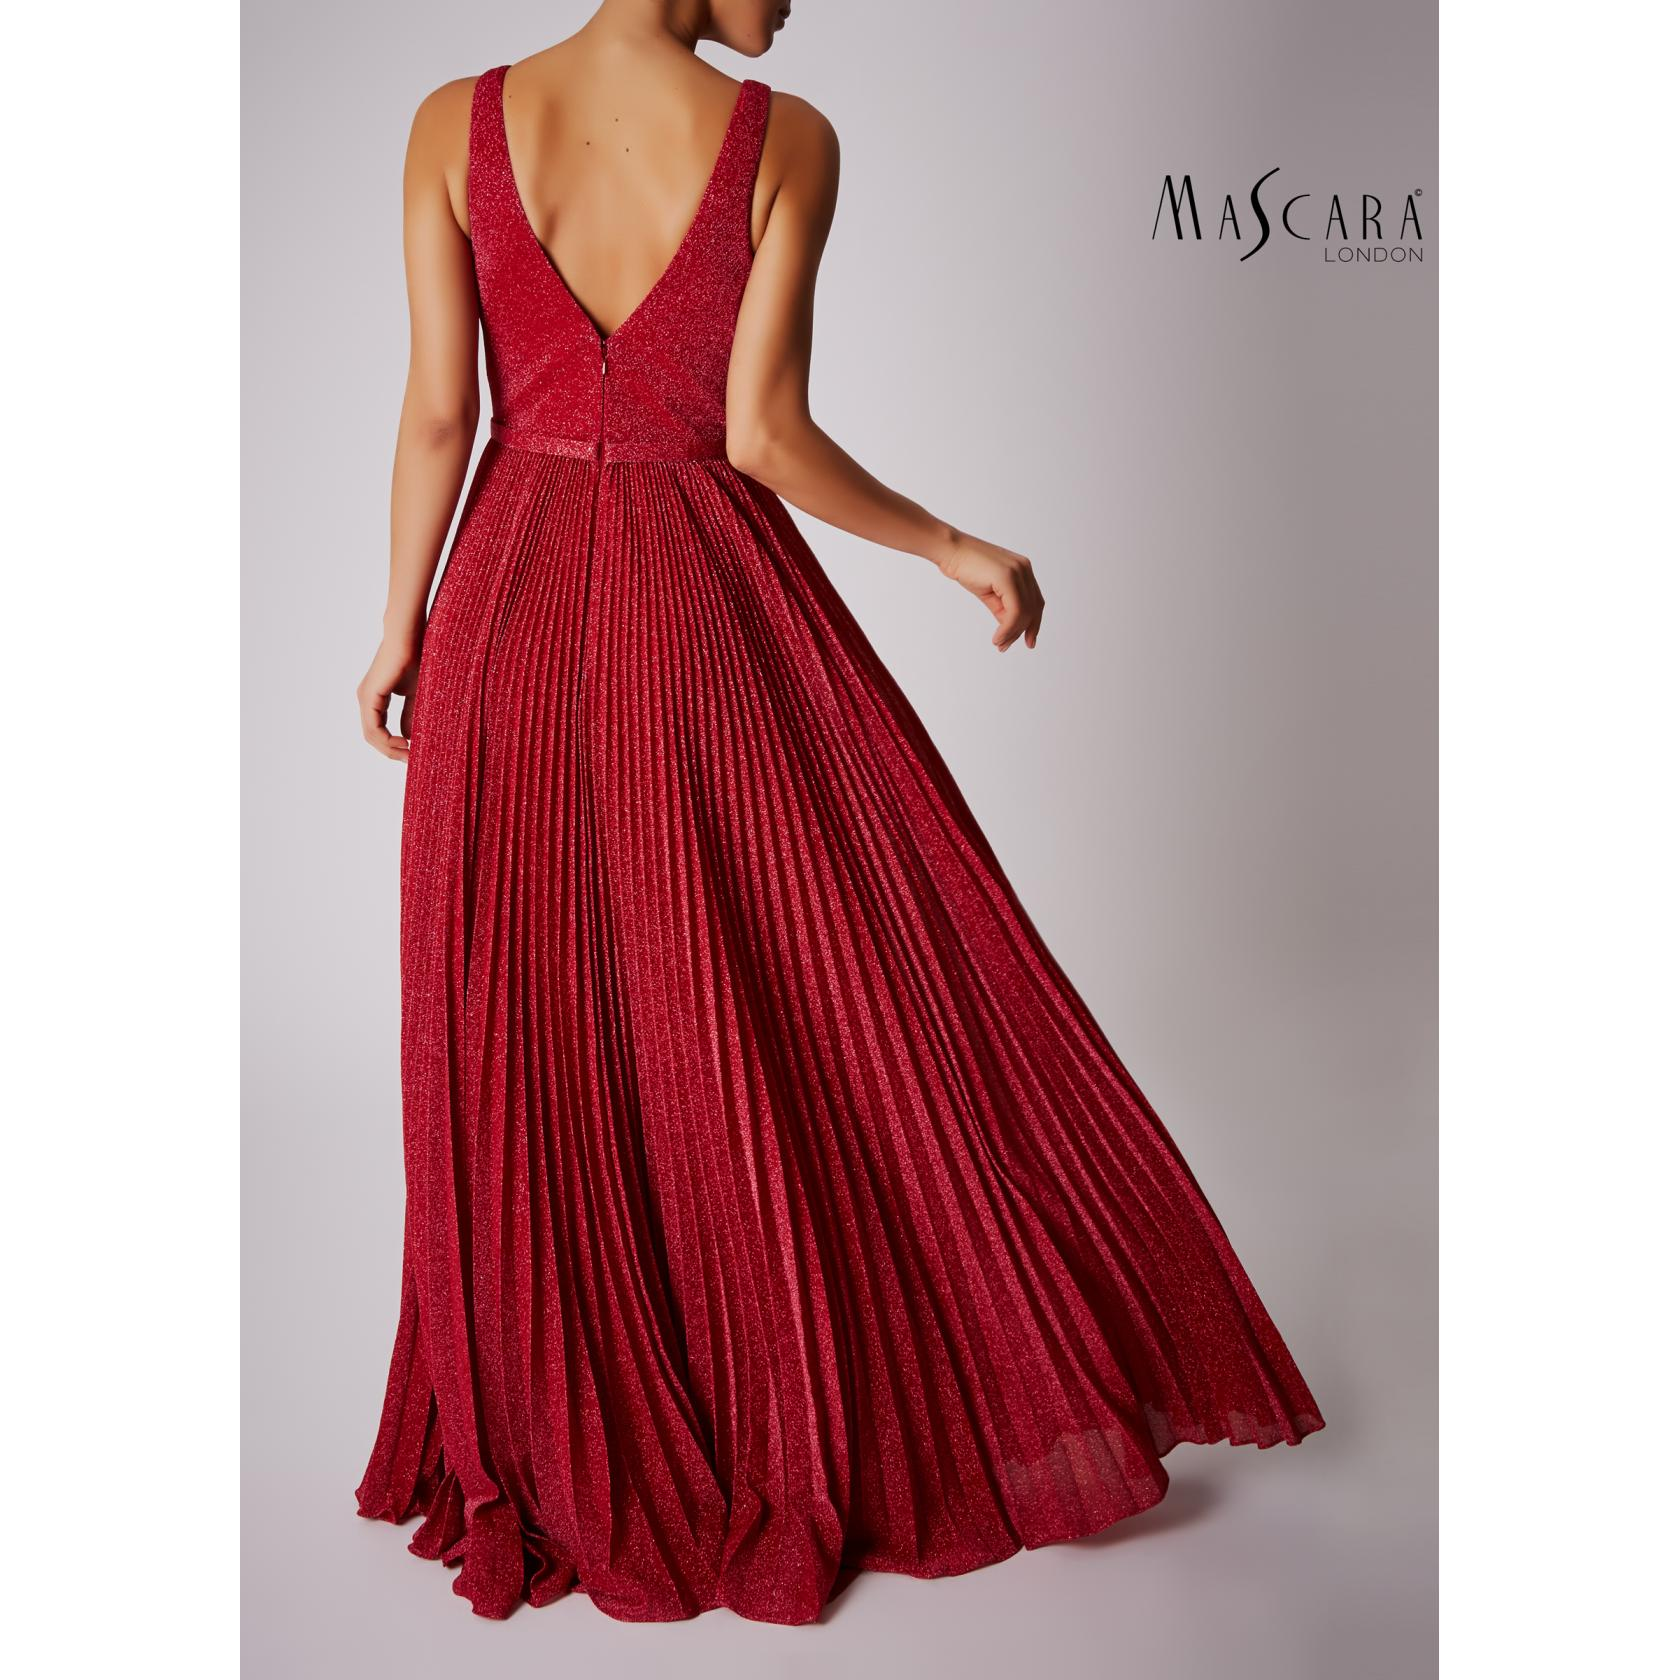 Mascara V Neck Pleated Lurex Full Length - Red 2